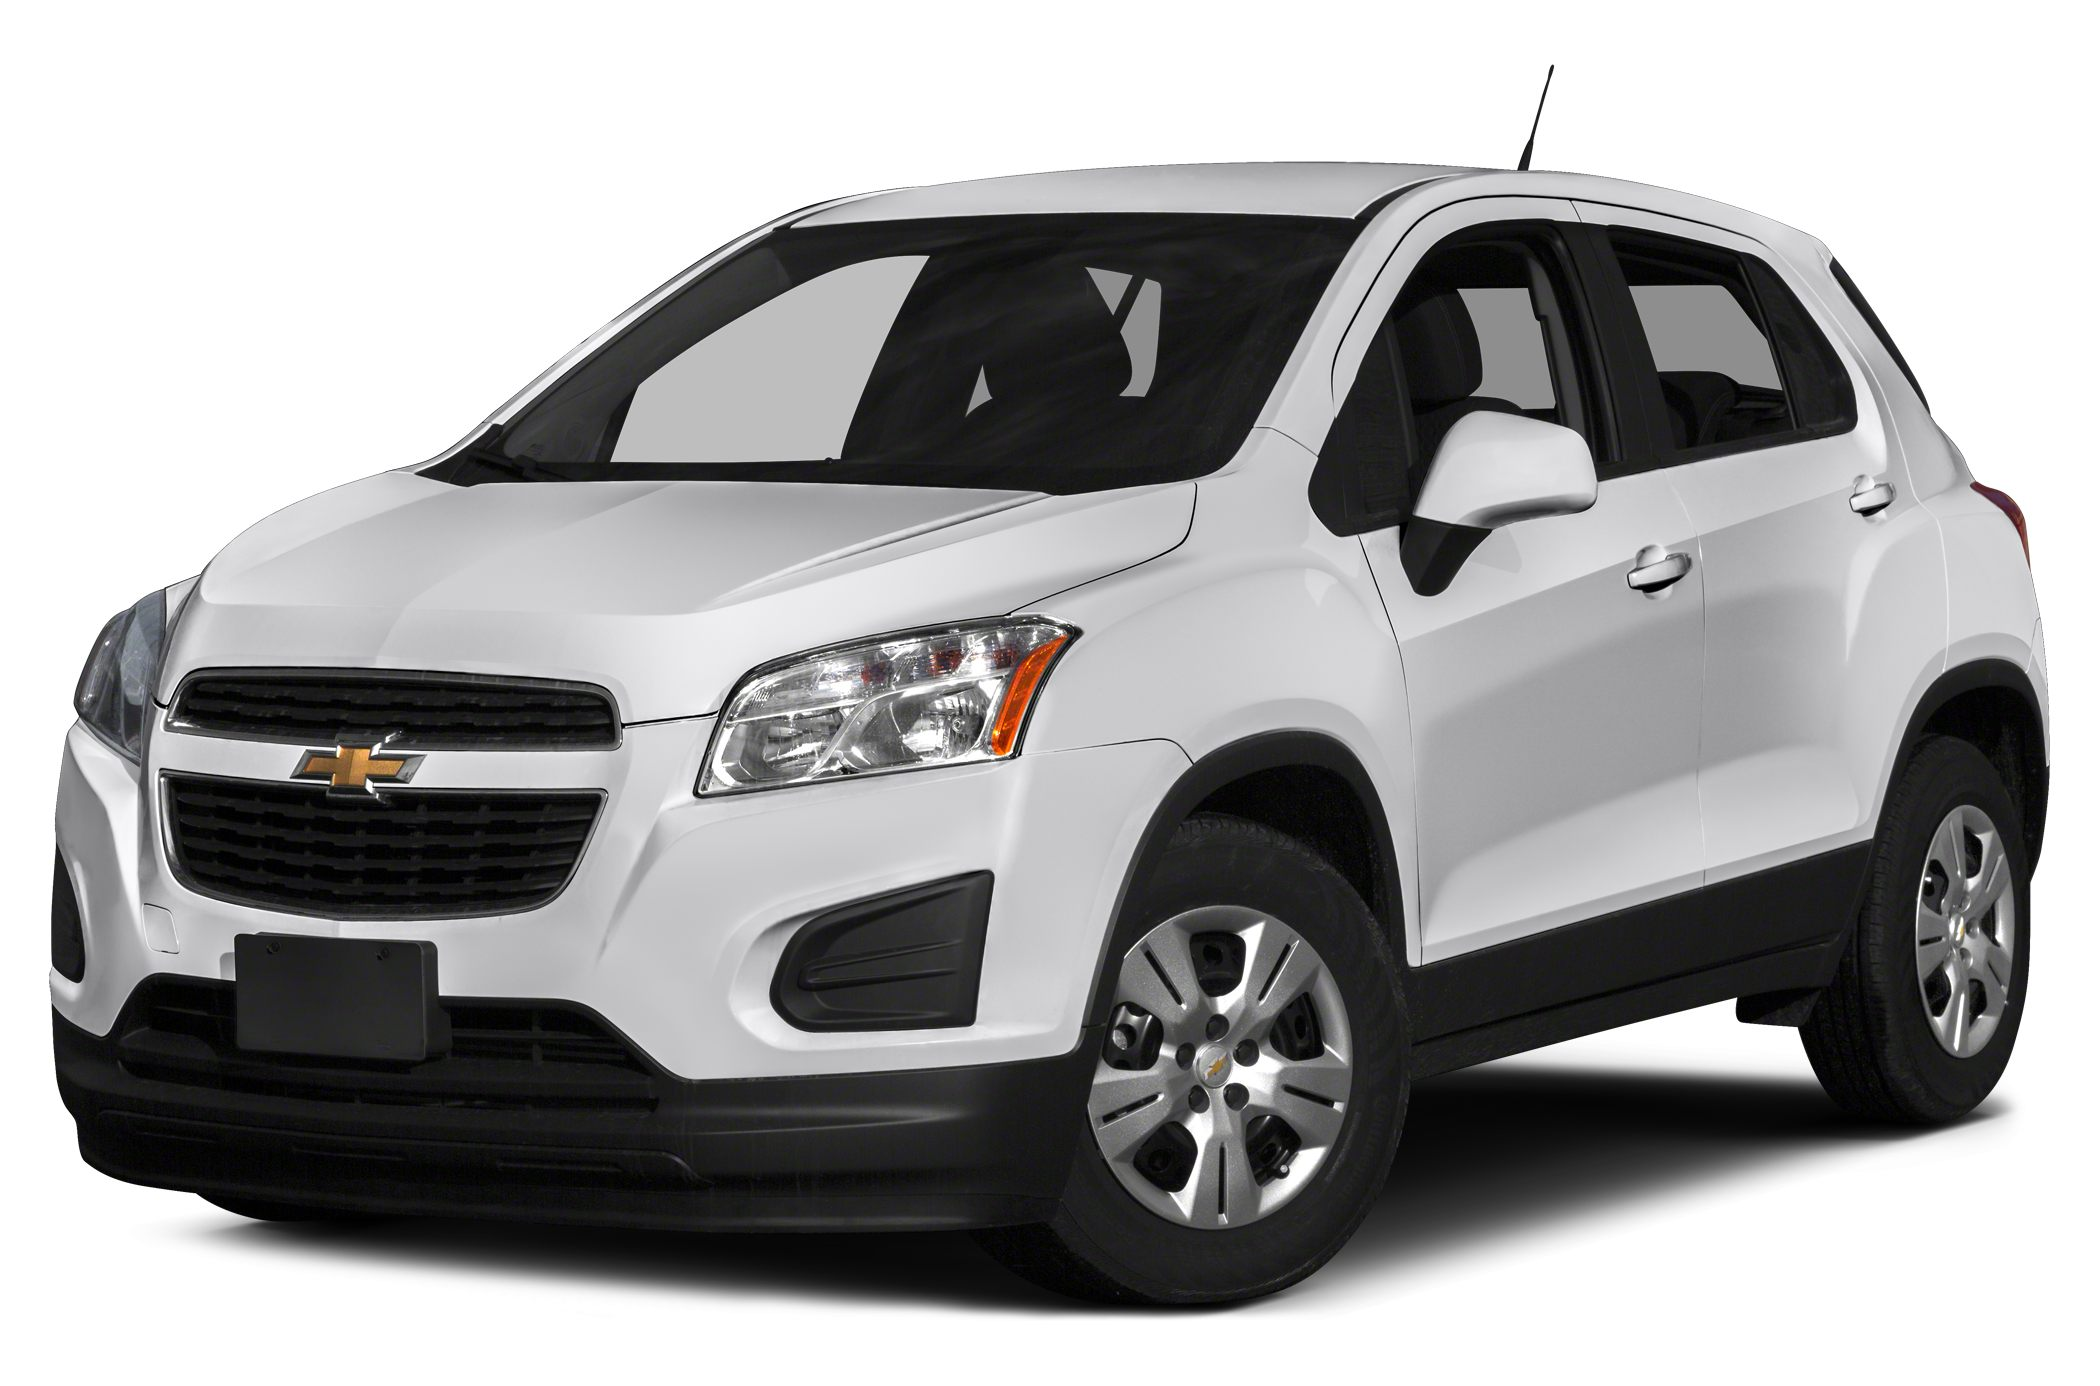 Chevrolet Trax News, Photos And Buying Information